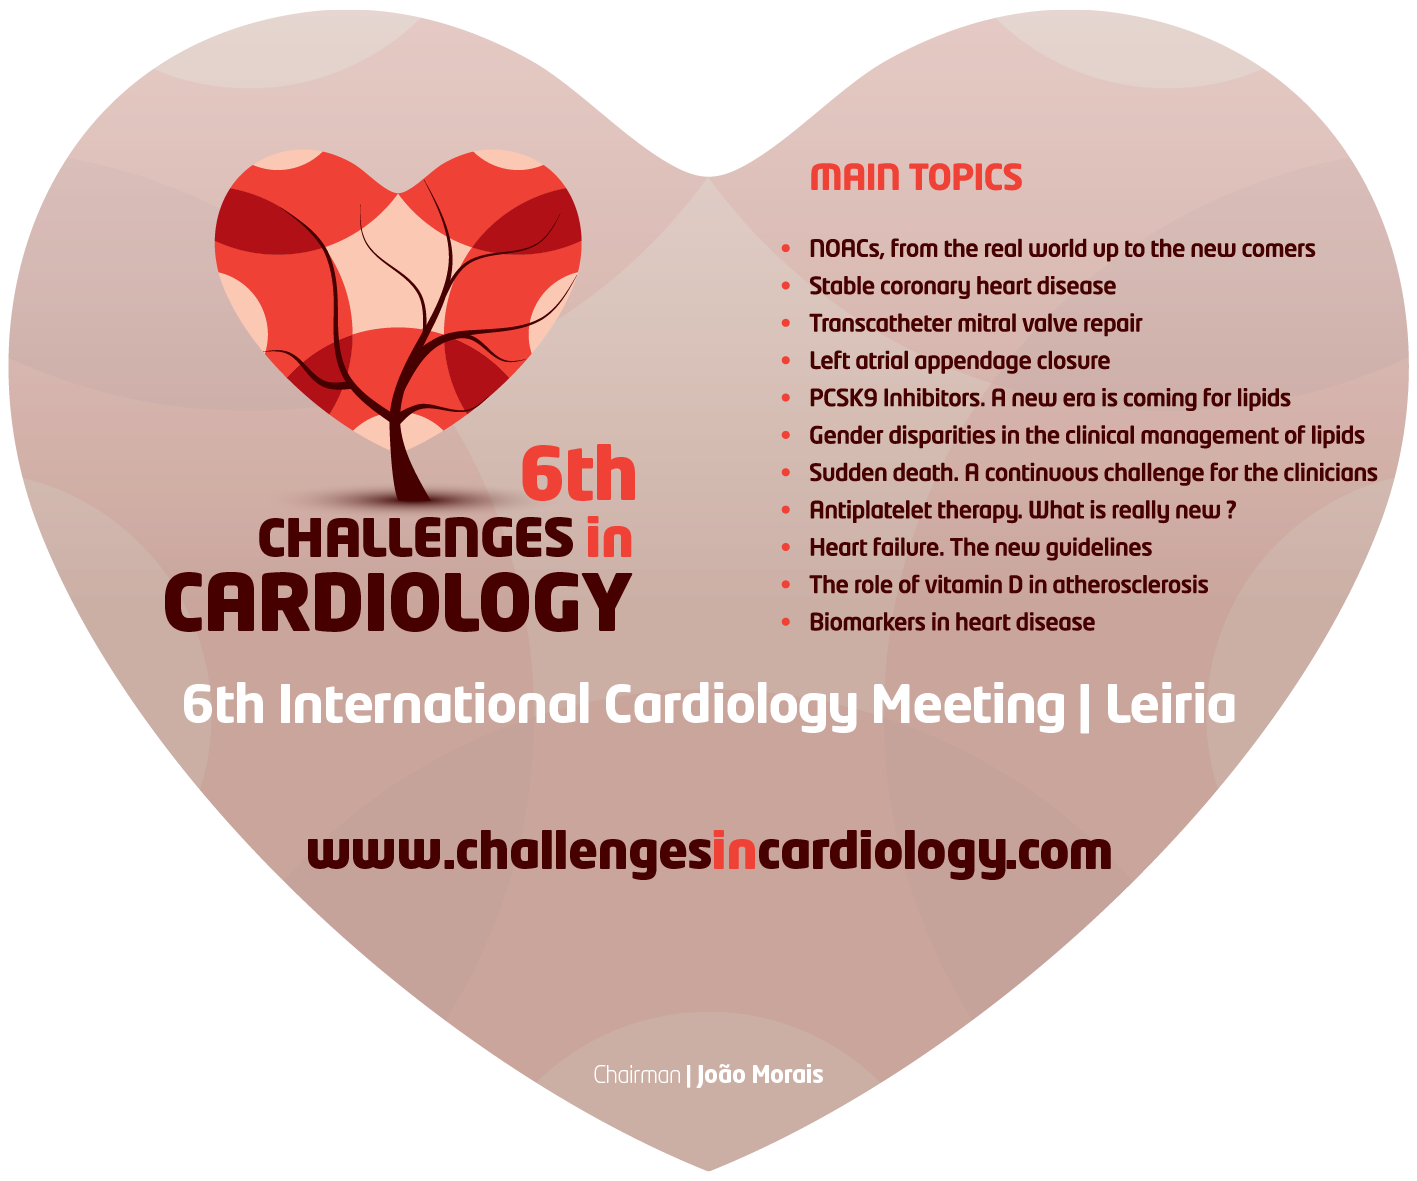 6th Challenges in Cardiology